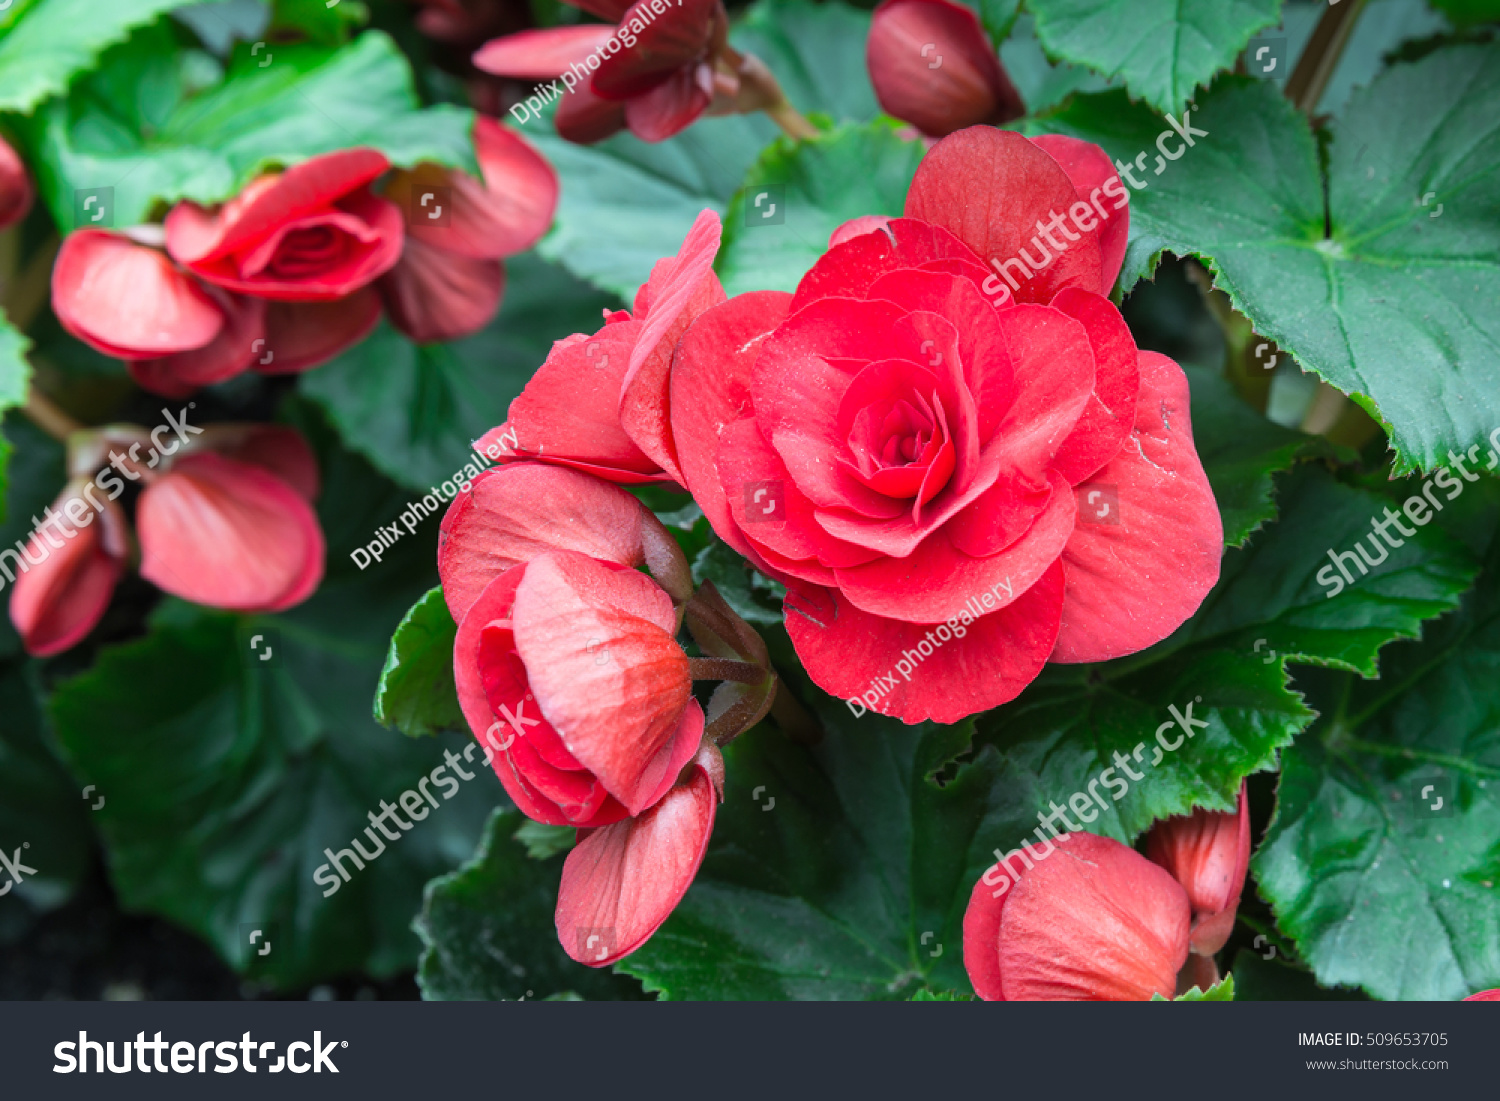 Red flowers green leaves beautiful flowers stock photo edit now red flowers green leaves beautiful flowers in the garden inside the dome izmirmasajfo